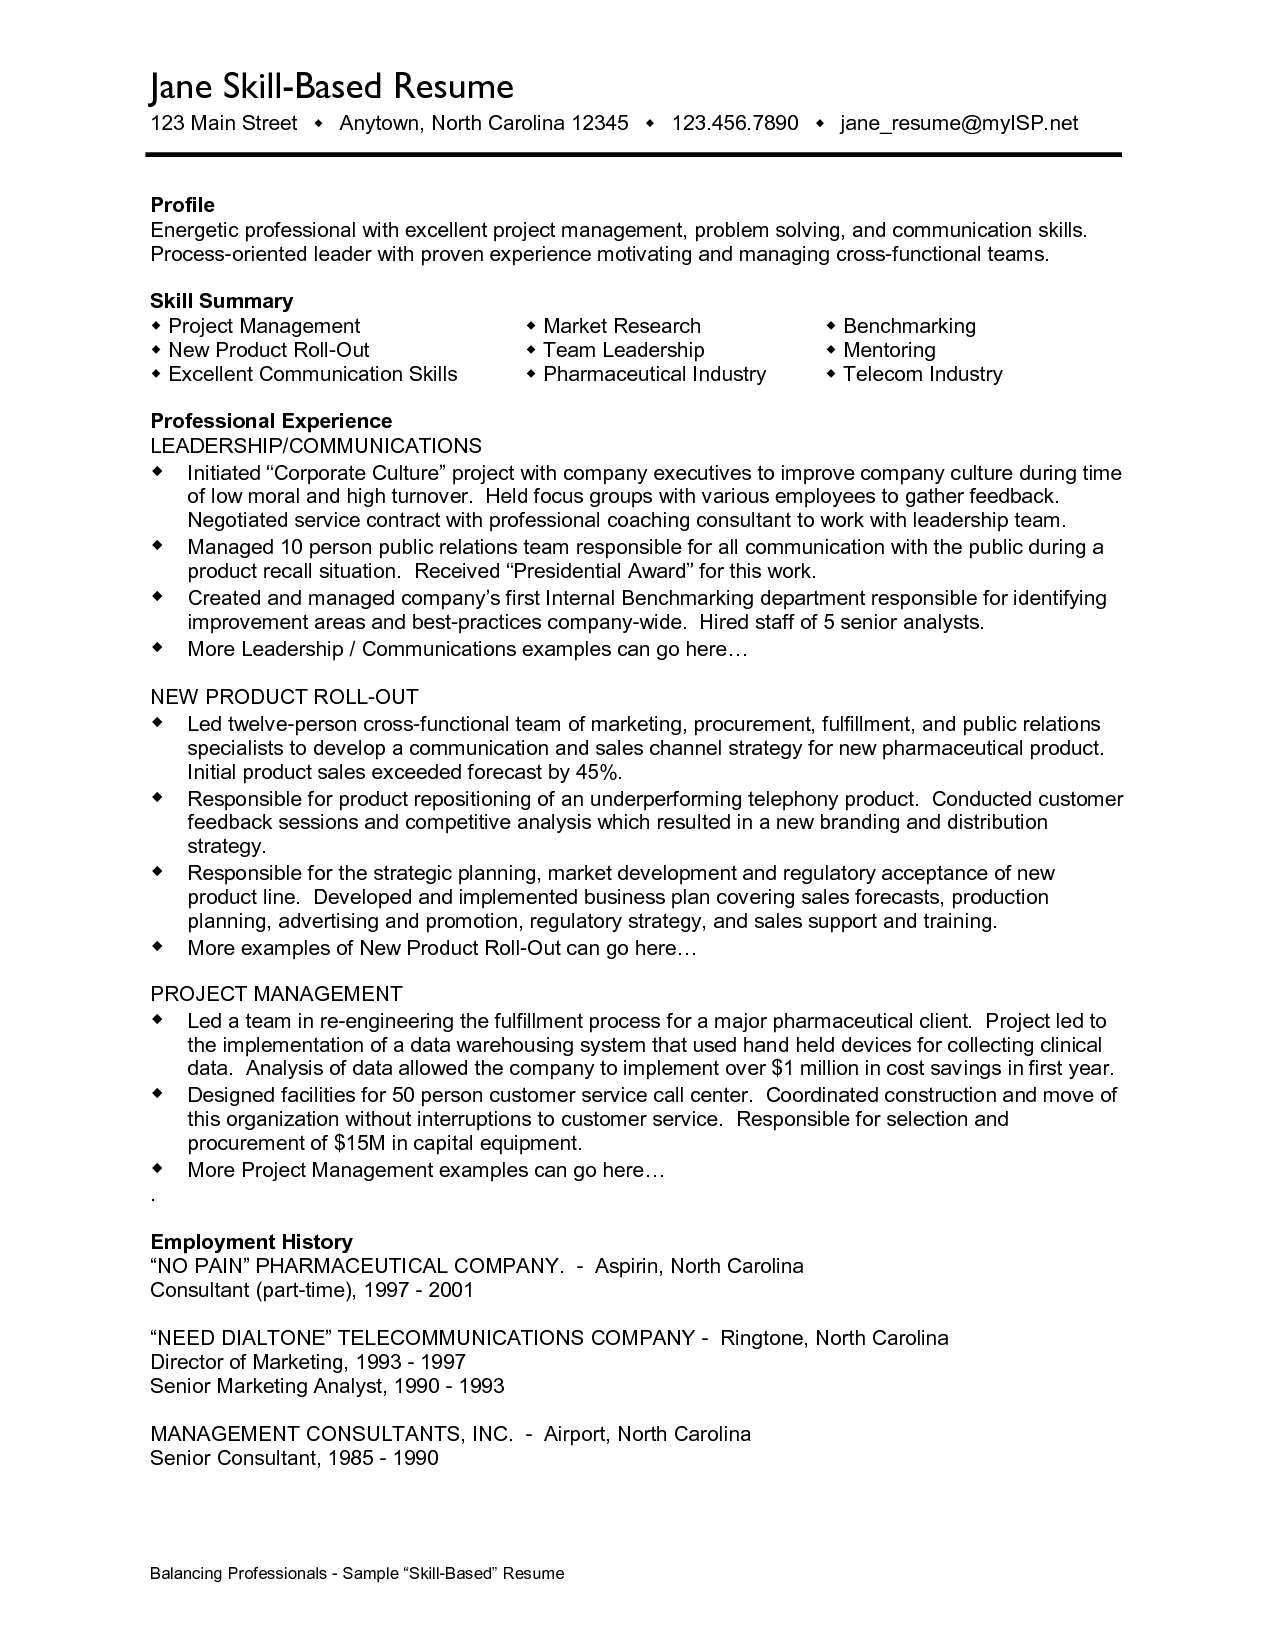 Jobs Skills For Resume Grude Interpretomics Co